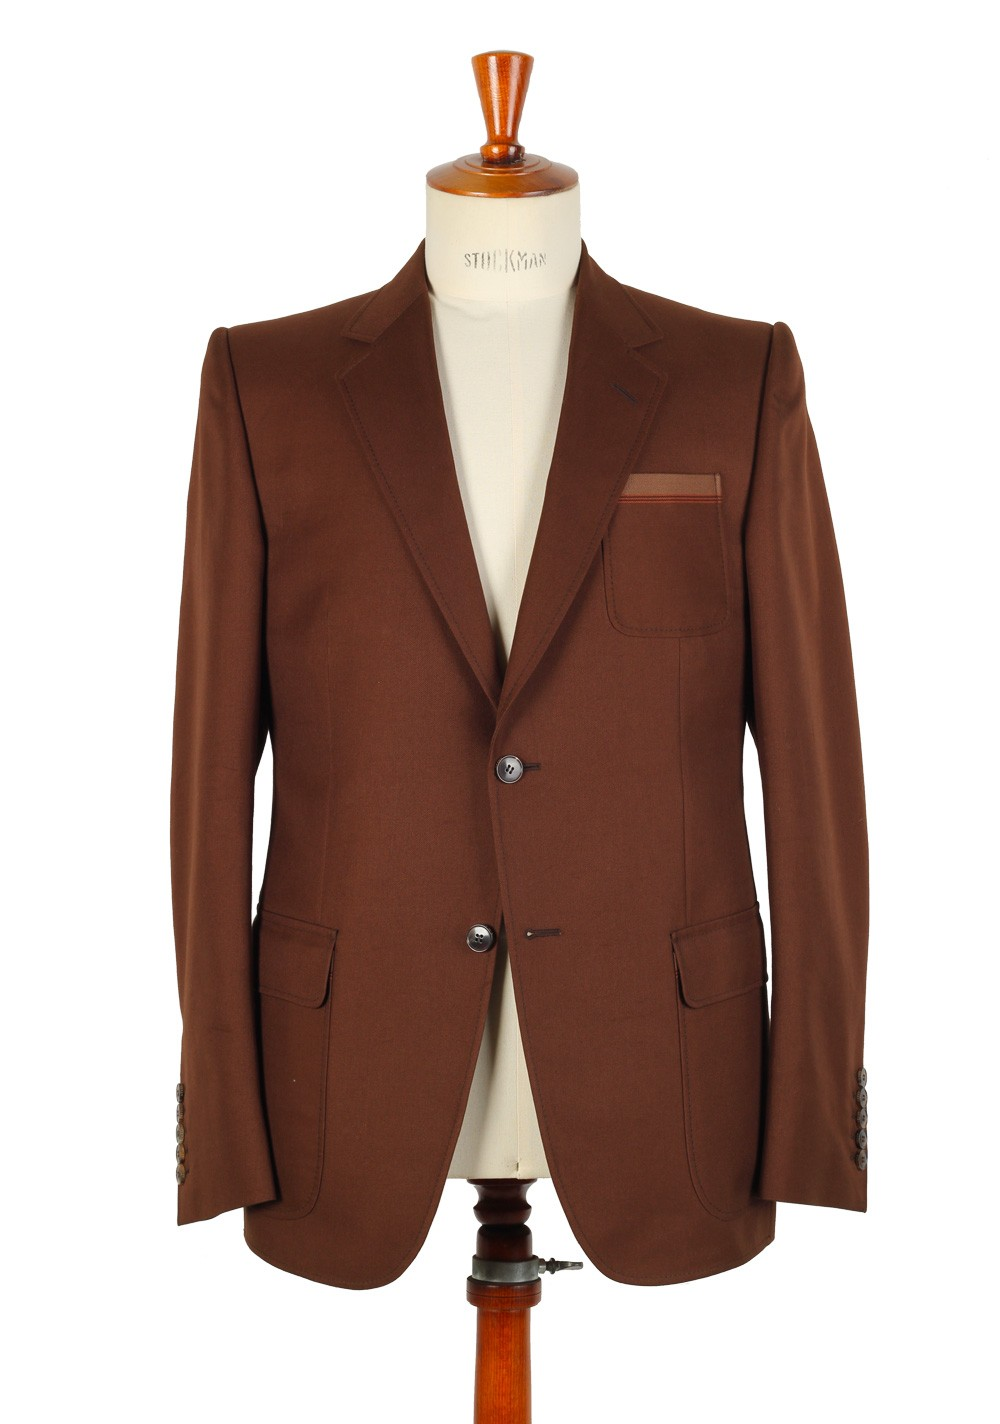 Blazers & Sport Coats Back to Men; Apply. Filter By clear all. Free Pick Up In Store Clear. Offers You have size preferences associated with your profile. My Sizes can filter products based on your preferred sizes every time you shop.